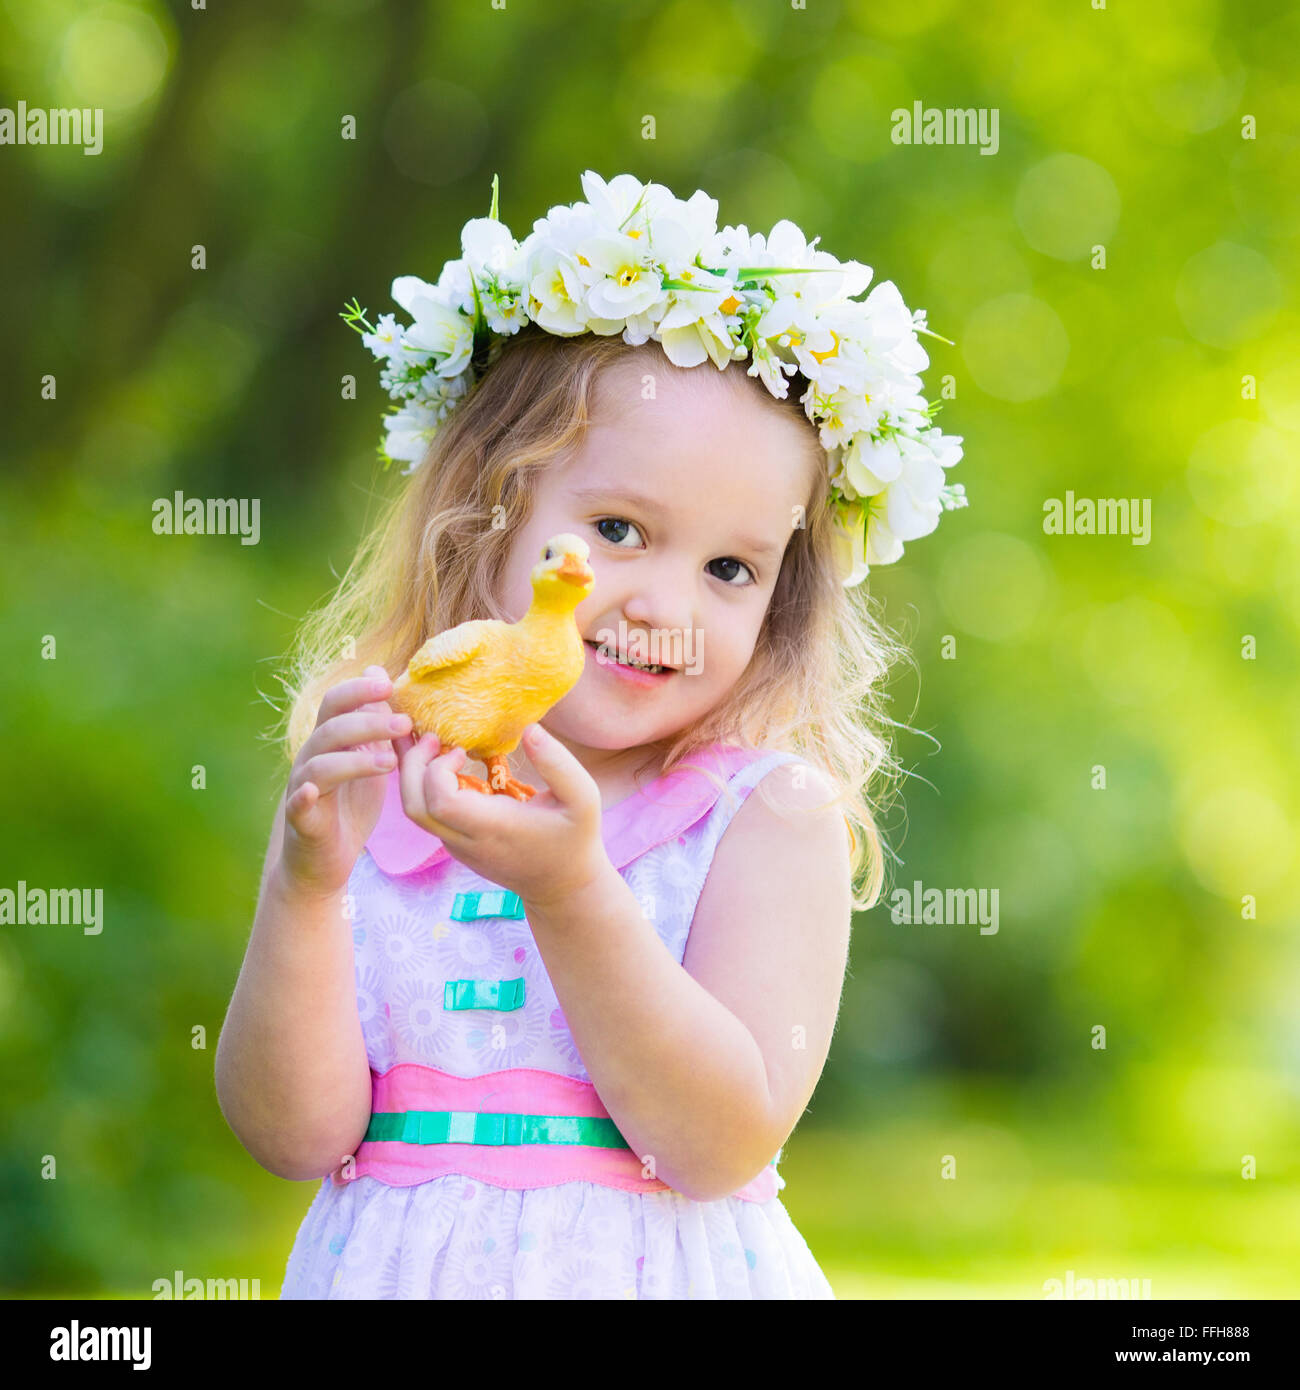 Little girl having fun on easter egg hunt kid in flower crown stock little girl having fun on easter egg hunt kid in flower crown playing with toy duck or chicken children searching for eggs izmirmasajfo Gallery